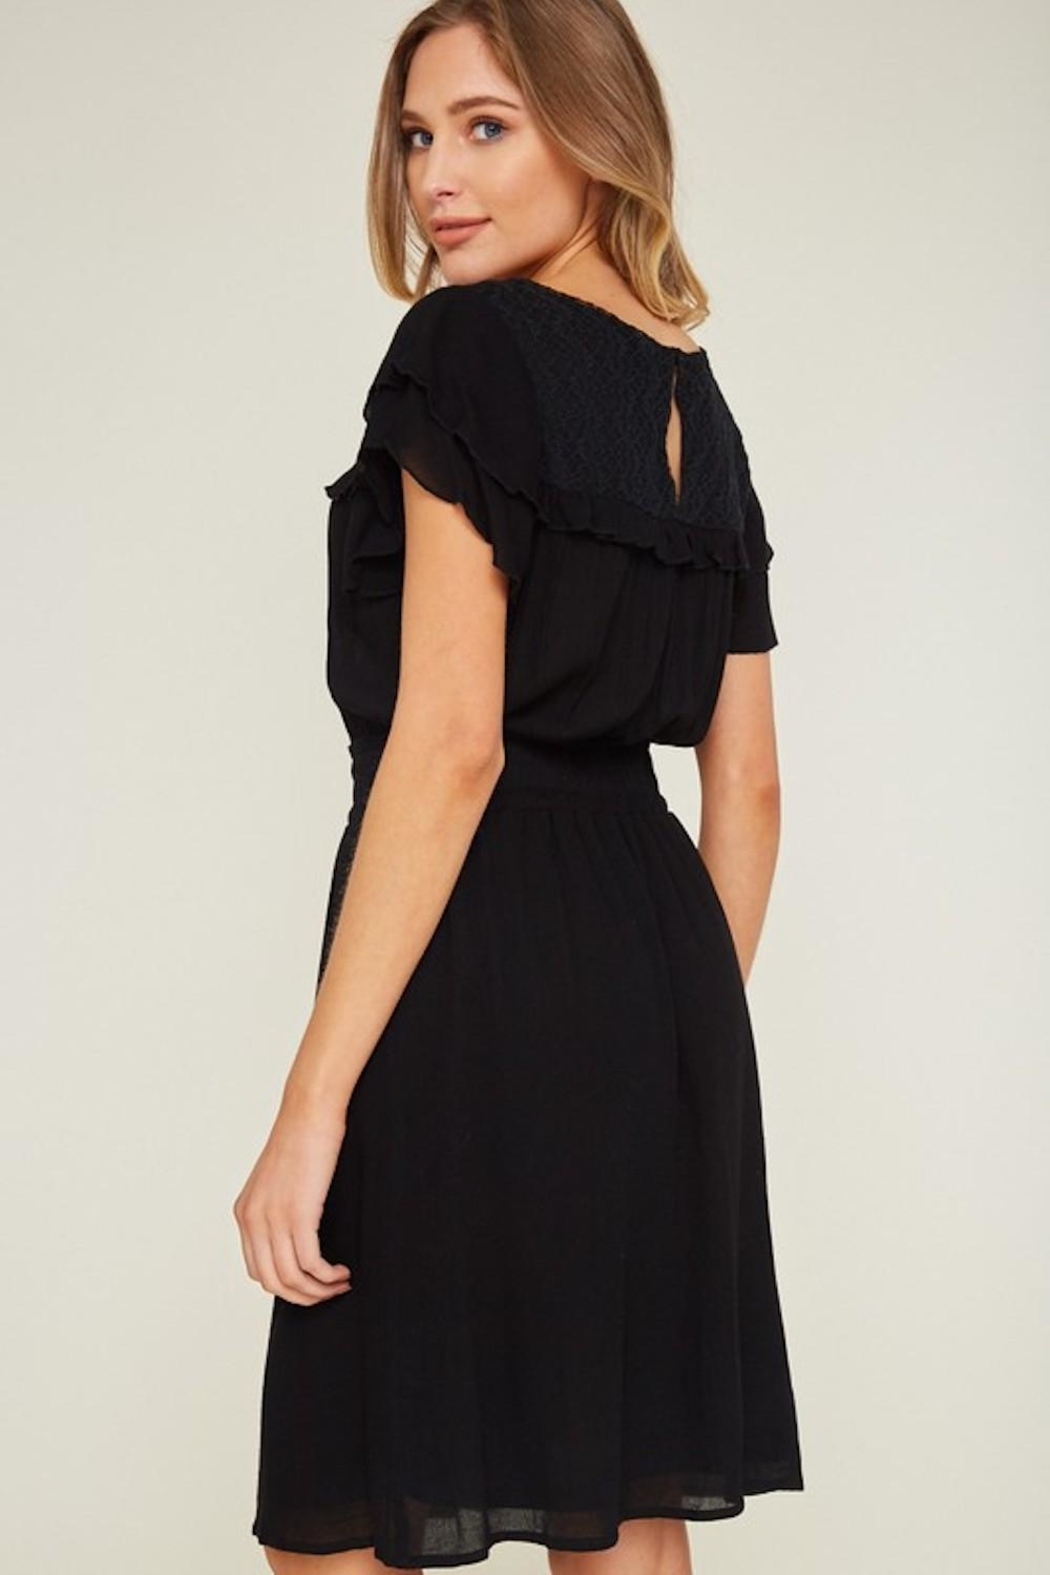 LLove USA Dainty Black Dress - Front Full Image